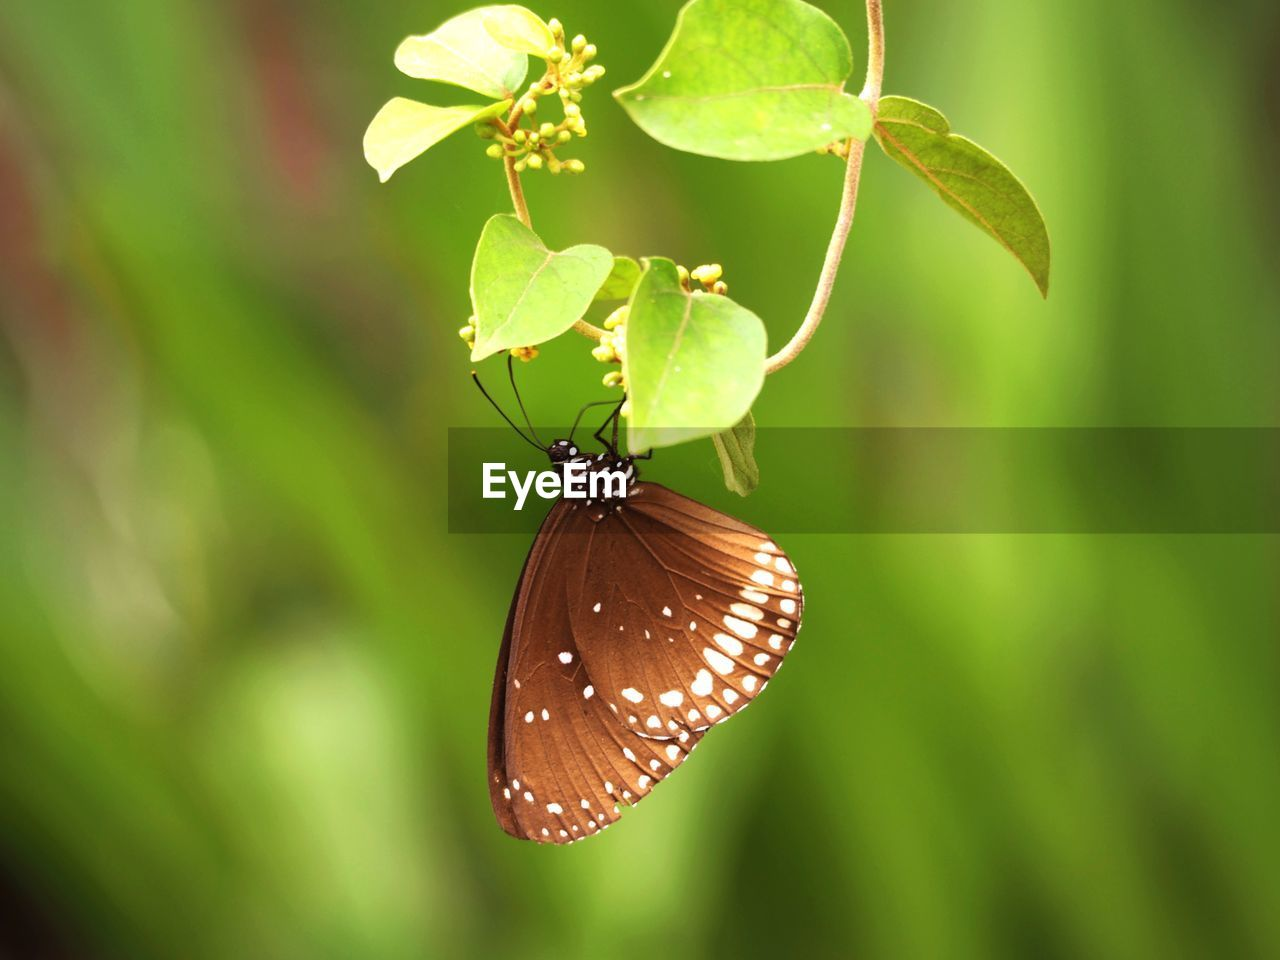 invertebrate, animal wildlife, insect, one animal, animal, animal themes, animals in the wild, animal wing, plant part, close-up, leaf, butterfly - insect, beauty in nature, focus on foreground, plant, no people, nature, day, green color, growth, butterfly, outdoors, pollination, leaves